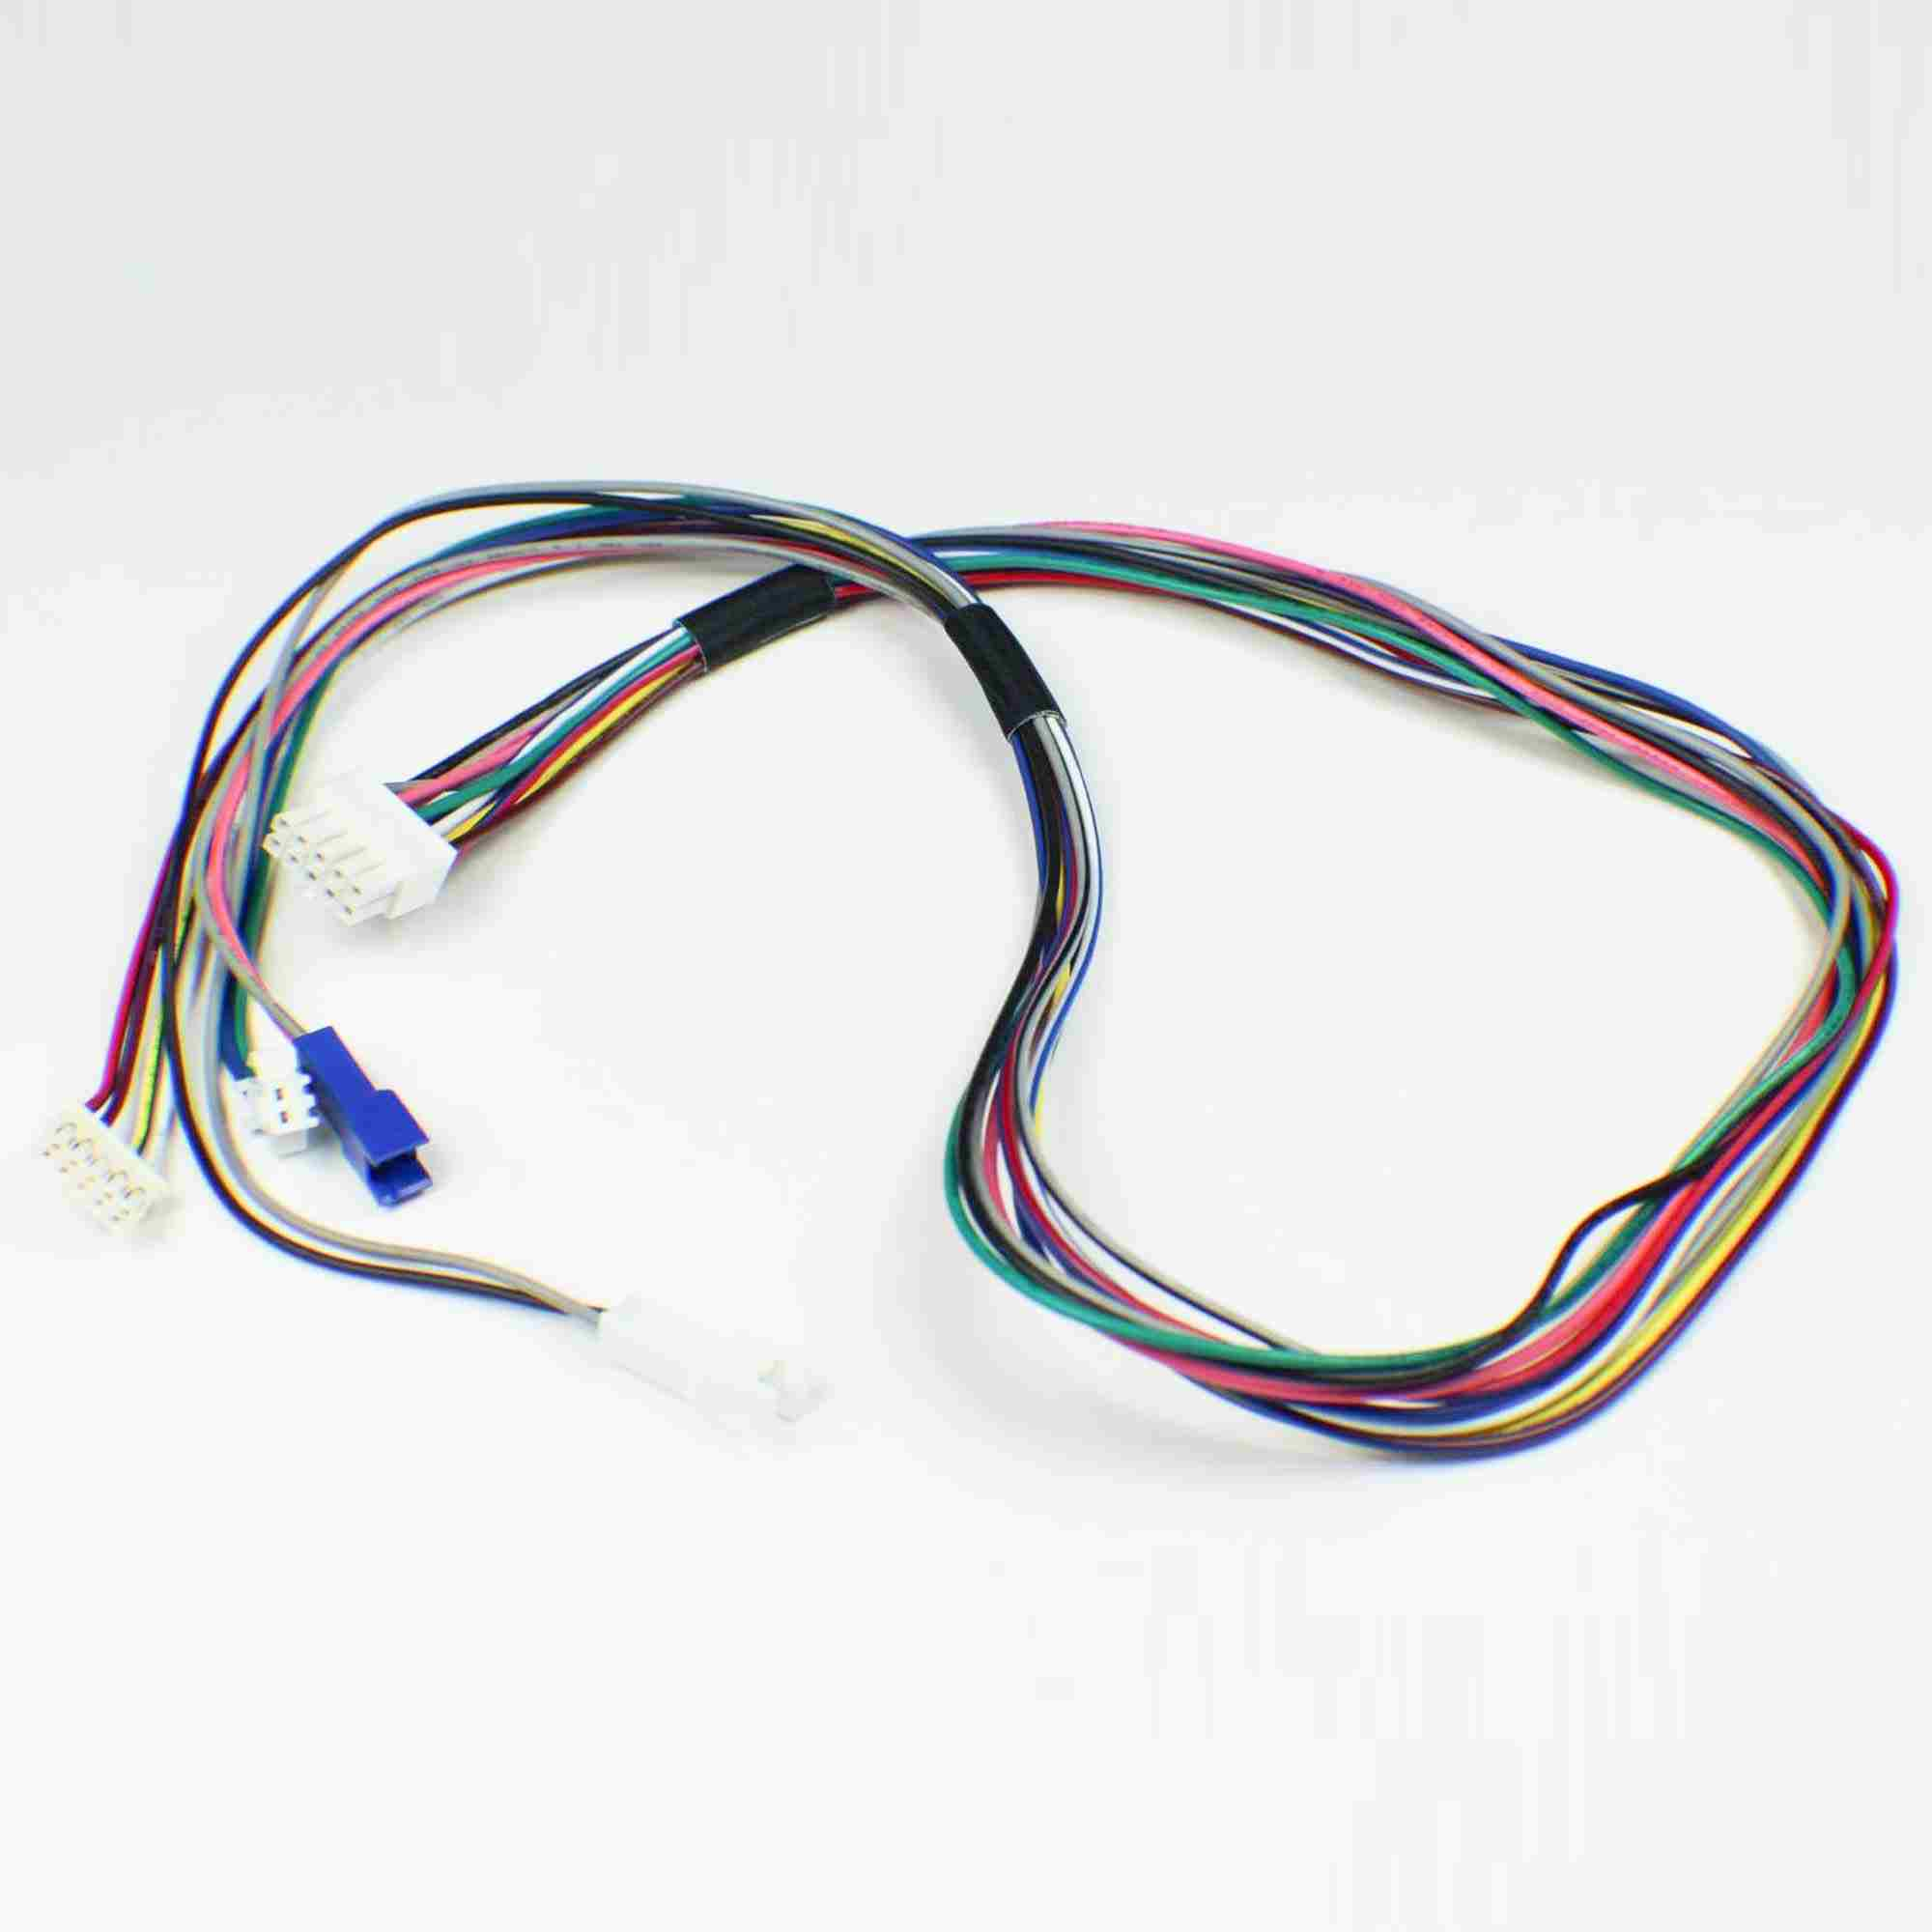 ... 241921501 for frigidaire refrigerator ice maker wire harness whirlpool ice  maker wiring harness adapter 241921501 for